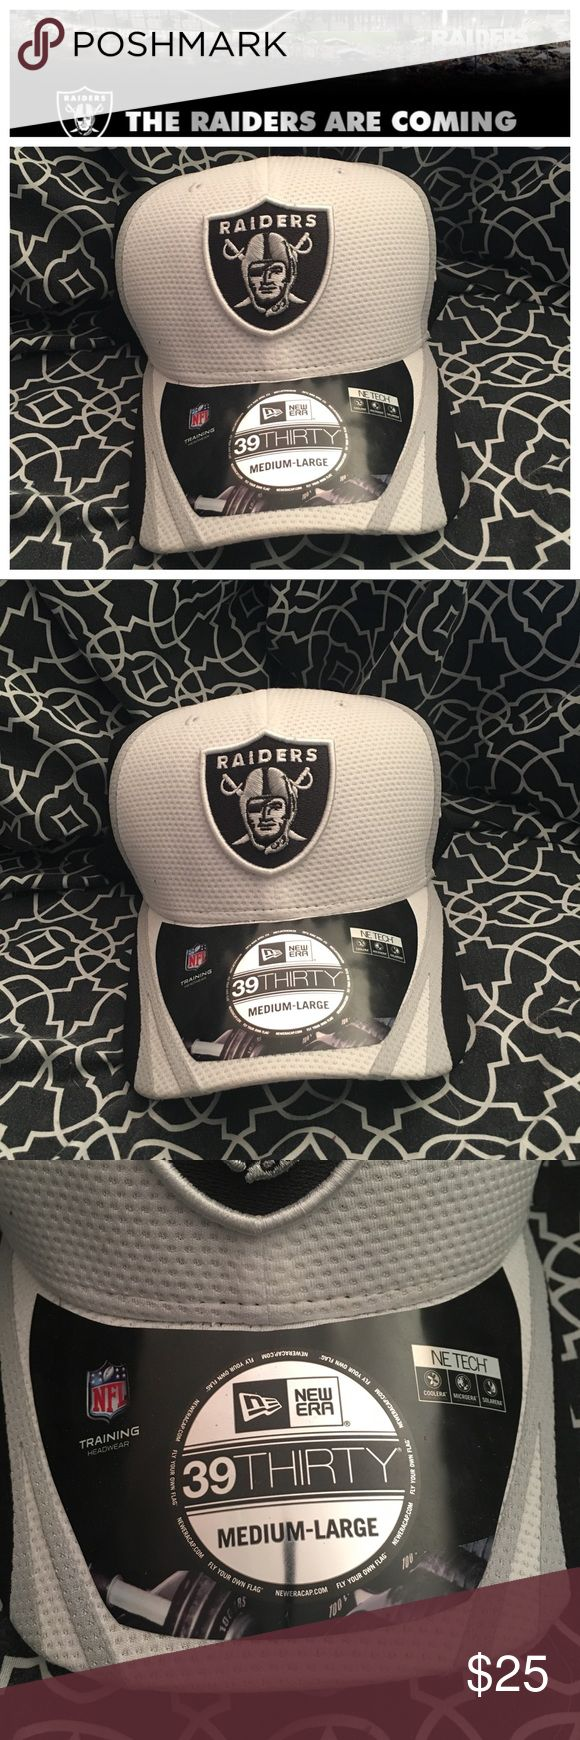 BNWT Raiders hat size Medium Large Get ready for your Las Vegas Raiders next season and get your hat to rep while you are waiting until gameday! Brand new with tags and even the store sticker on the inside bill. Just too big for me I need a small medium. This is a white gray and black gender neutral hat 100% polyester stretch fit curved bill with a nice structured fit to it. Awesome hat!!! New Era Accessories Hats